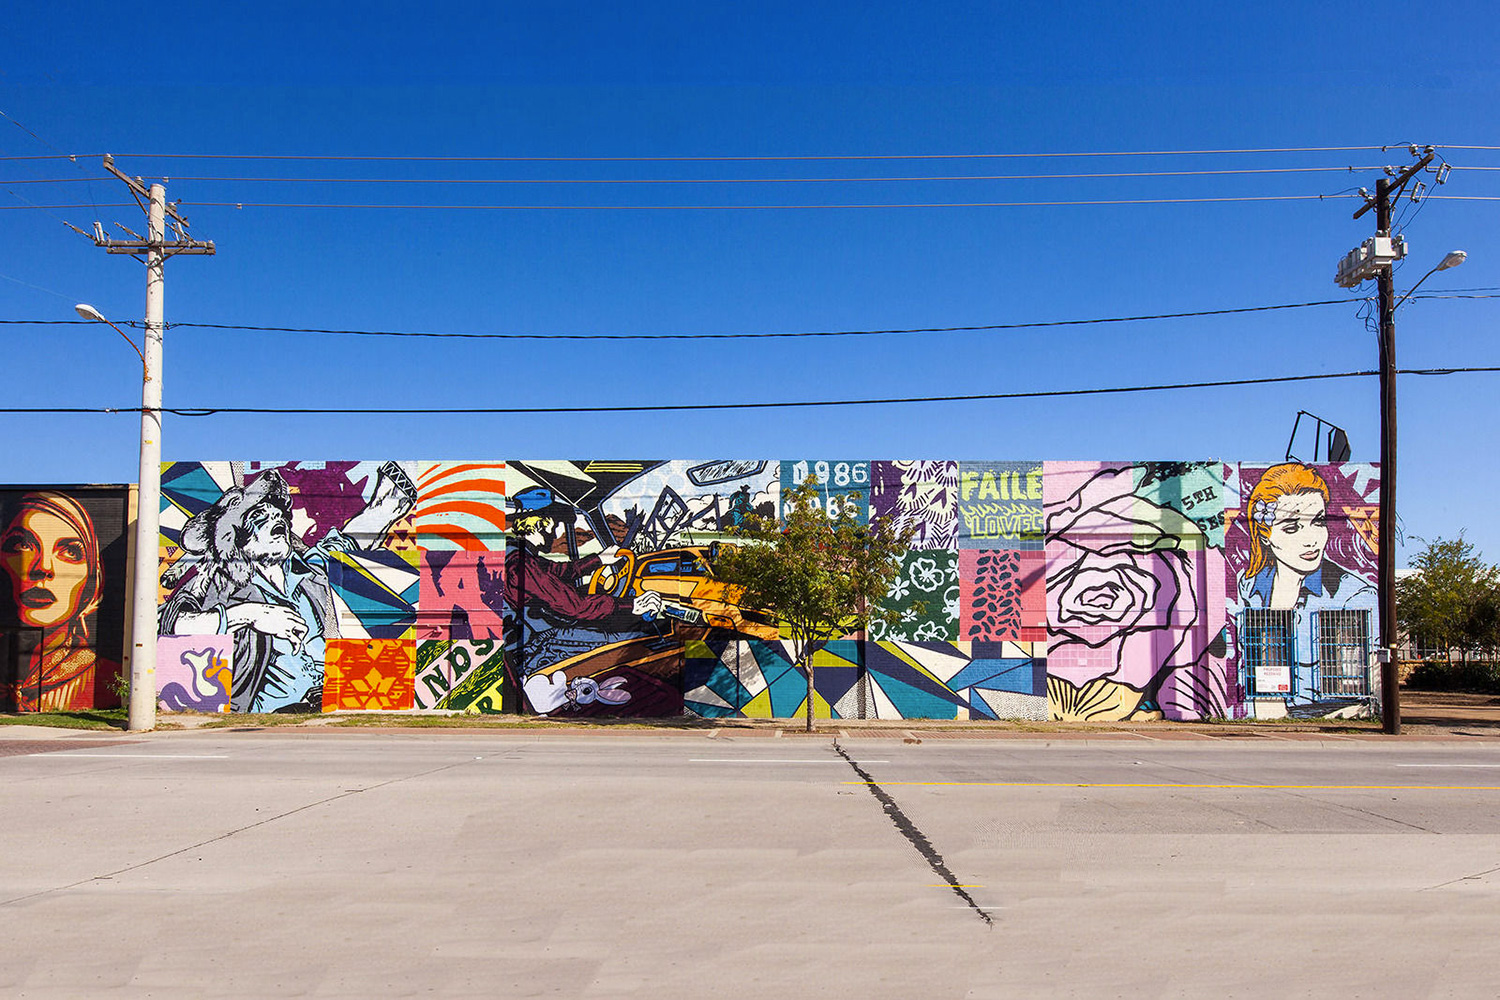 Faile-mural-Dallas-Texas-2013-Photo-Courtesy-of-Kevin-Todora